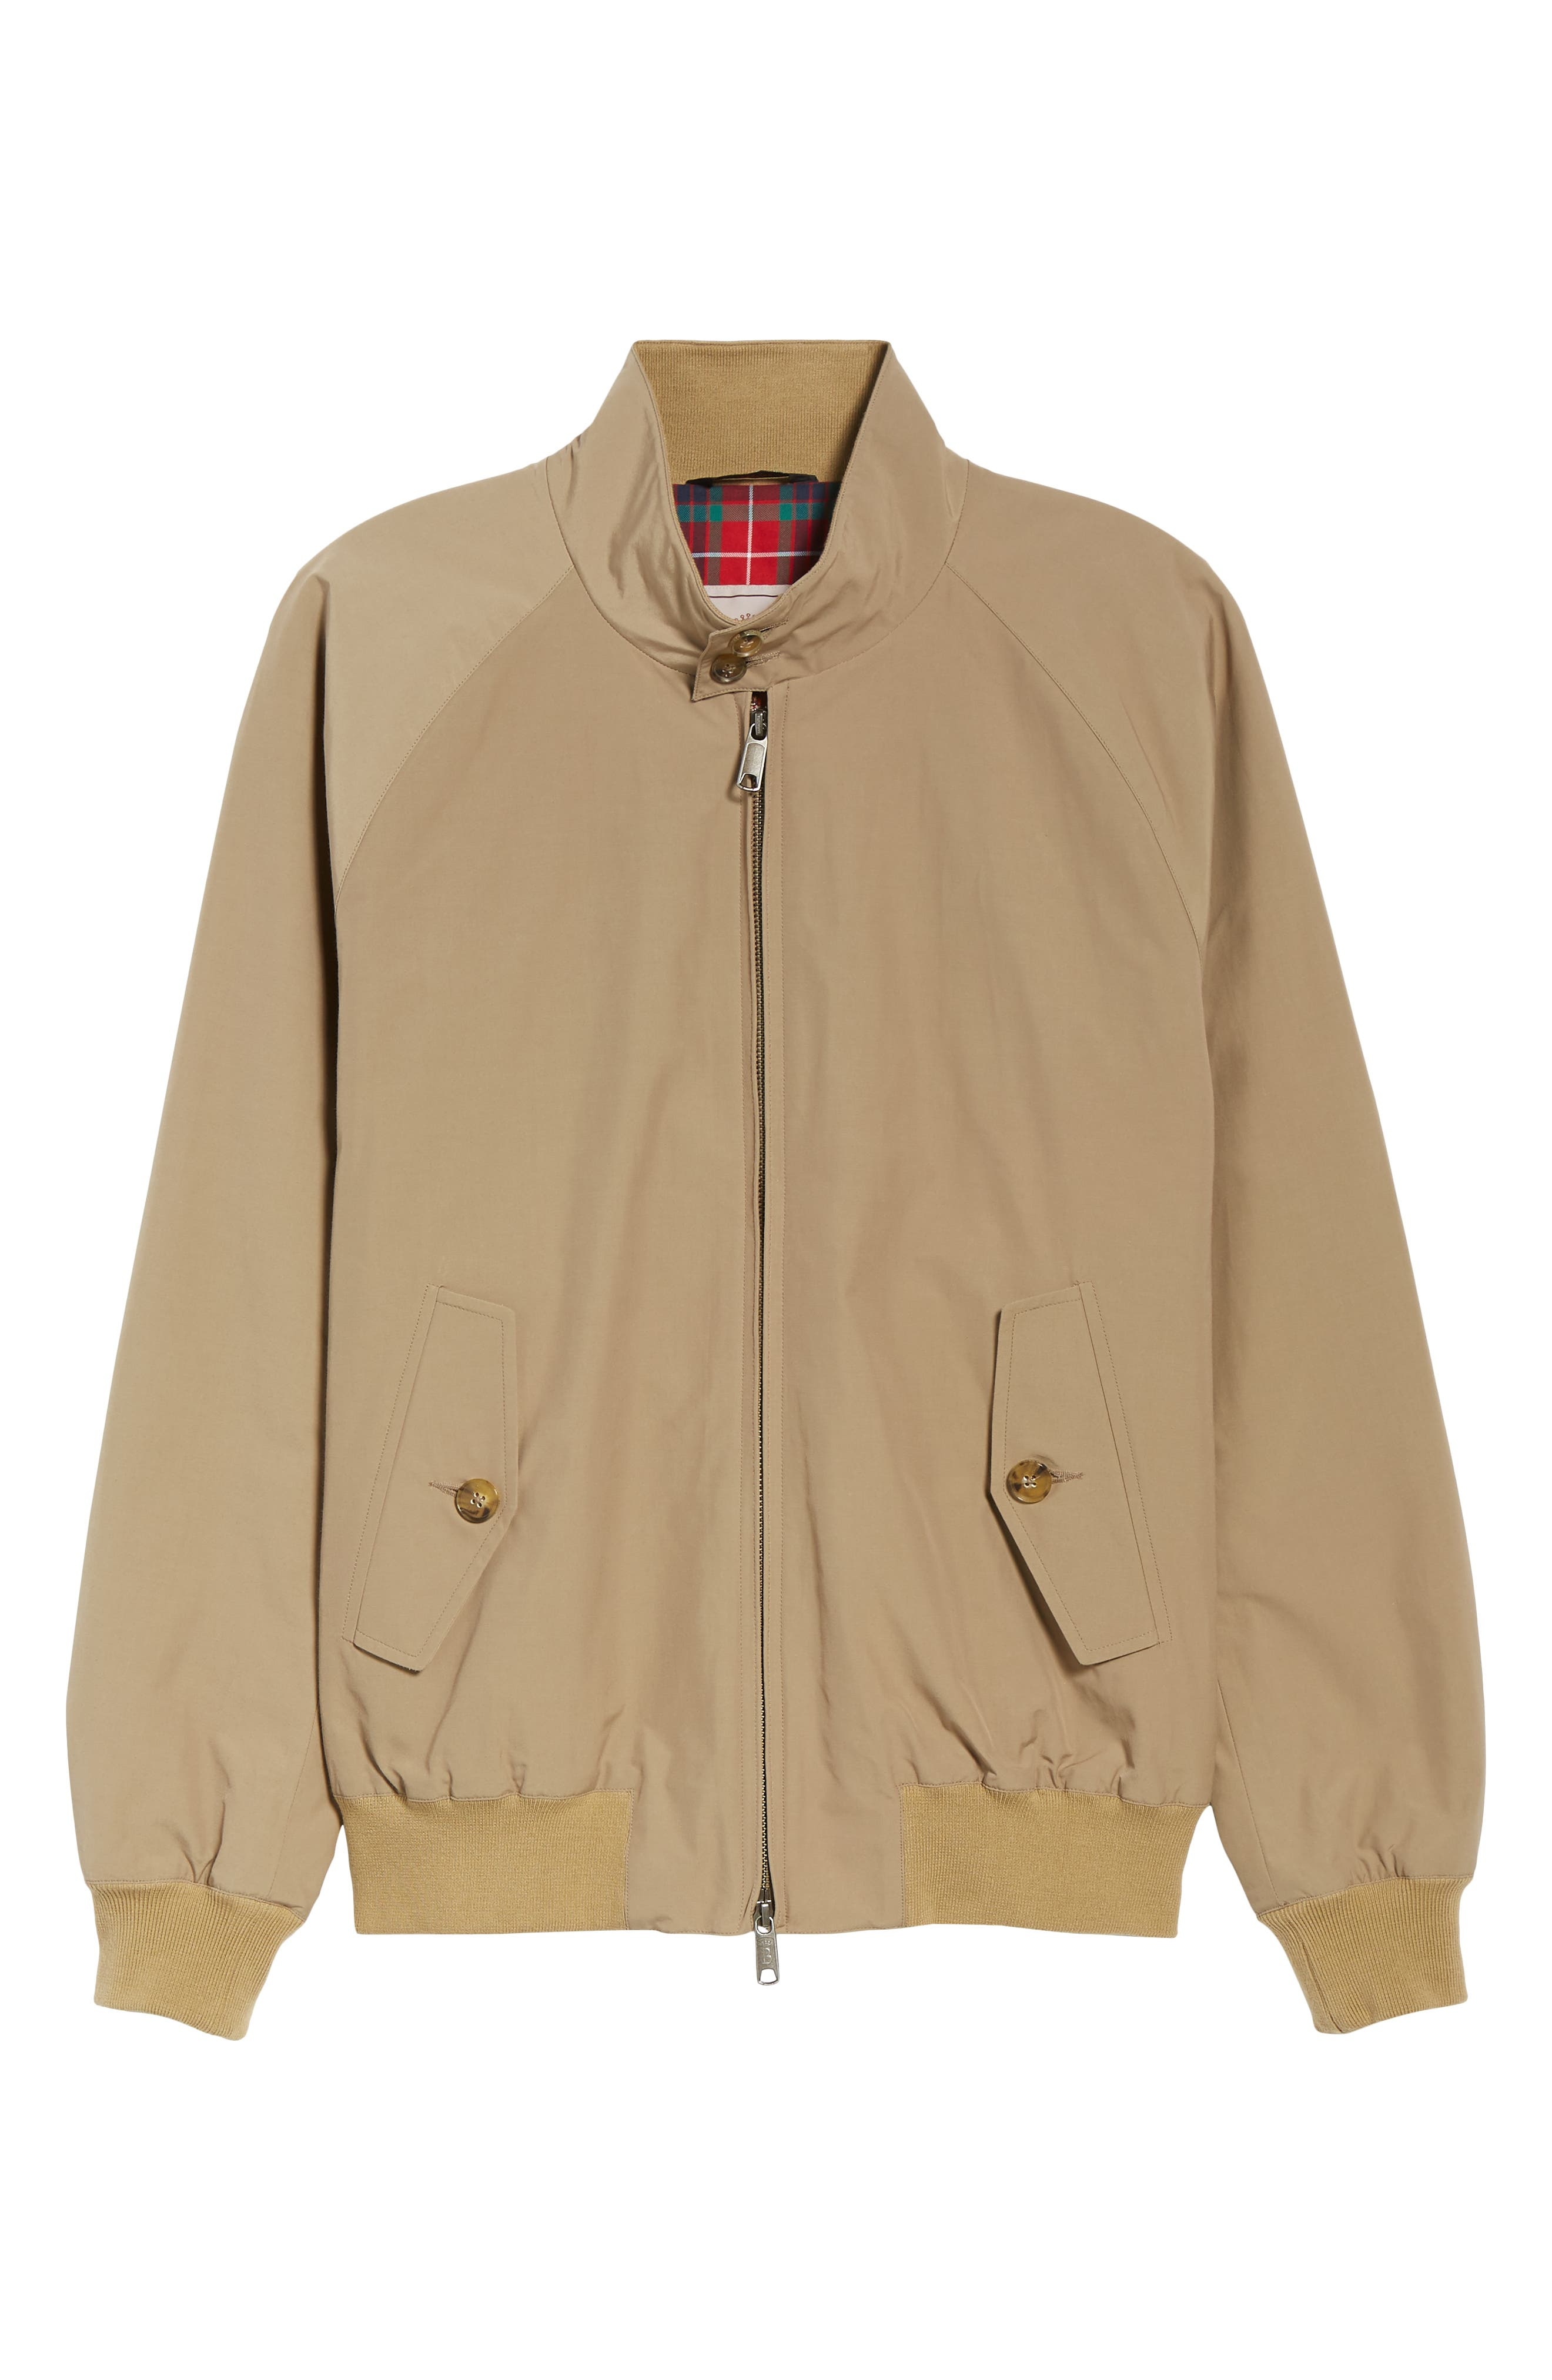 G9 Water Repellent Harrington Jacket,                             Alternate thumbnail 5, color,                             TAN